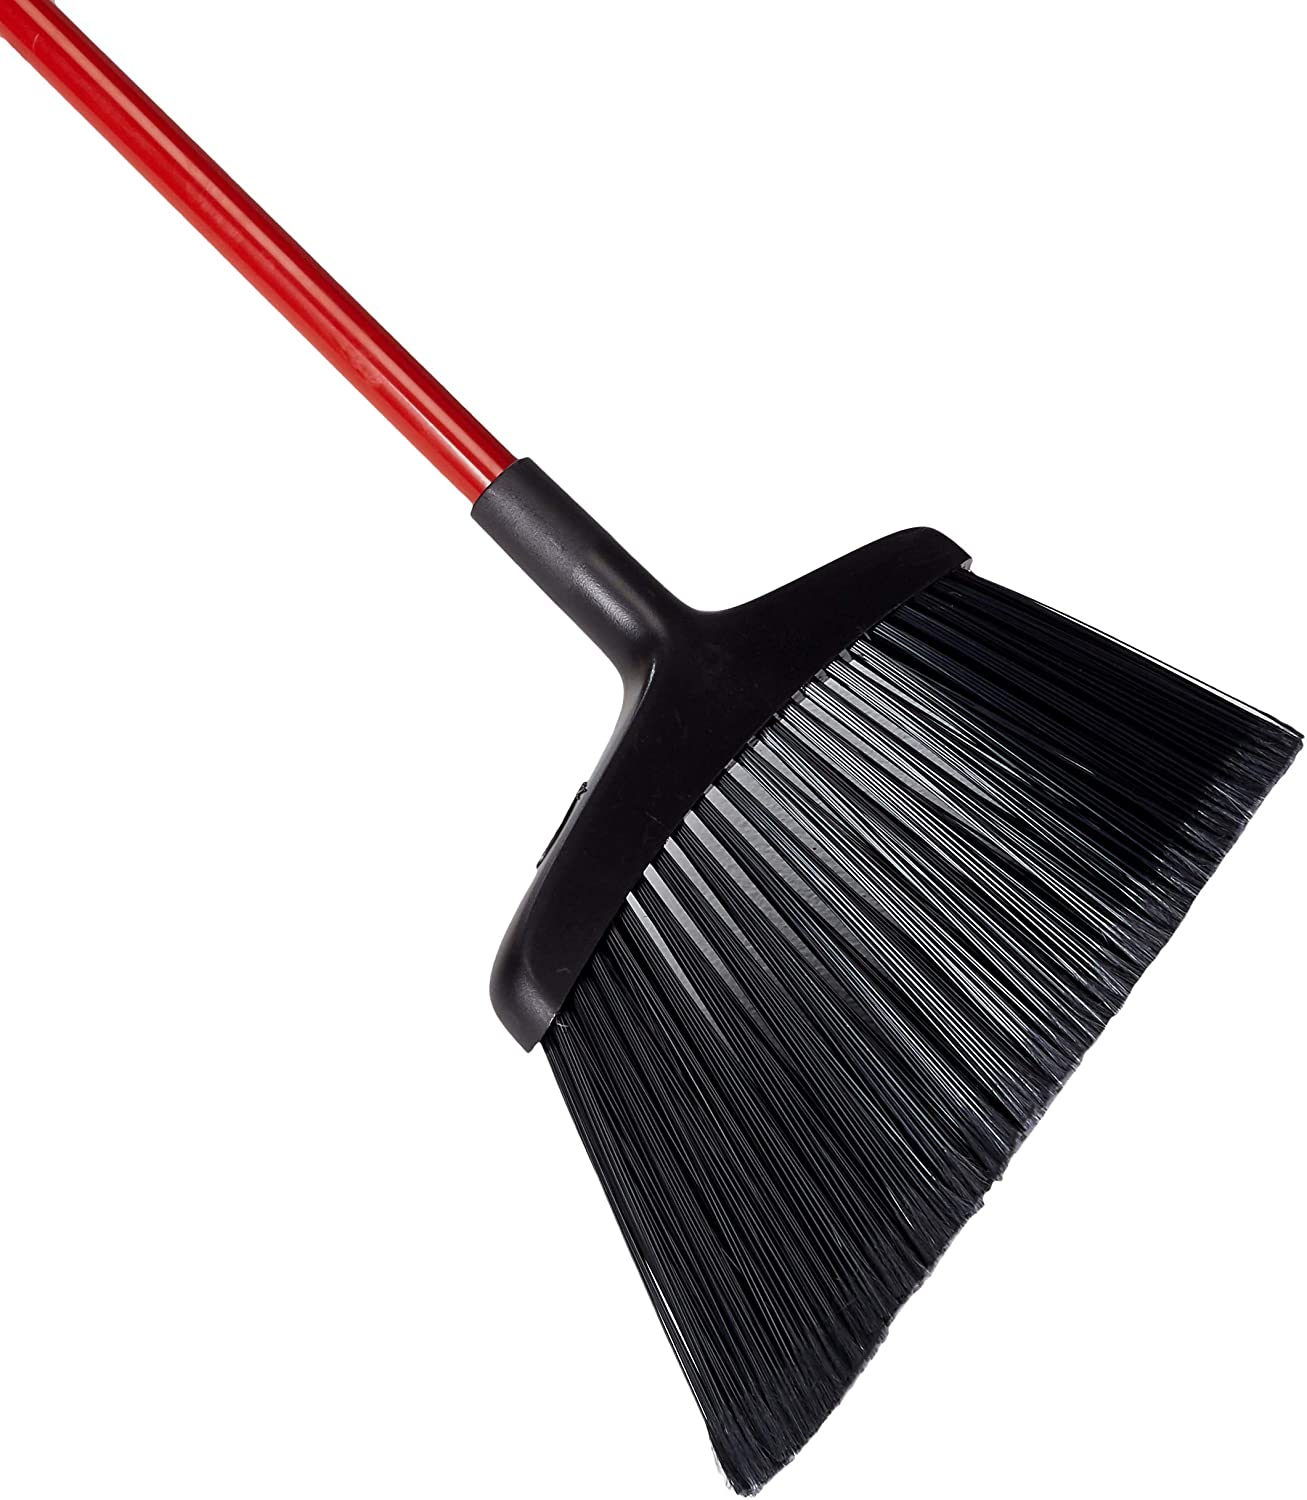 Black//Red 13 Width 54 Length Libman Commercial 994 Commercial Angle Broom Renewed Pack of 6